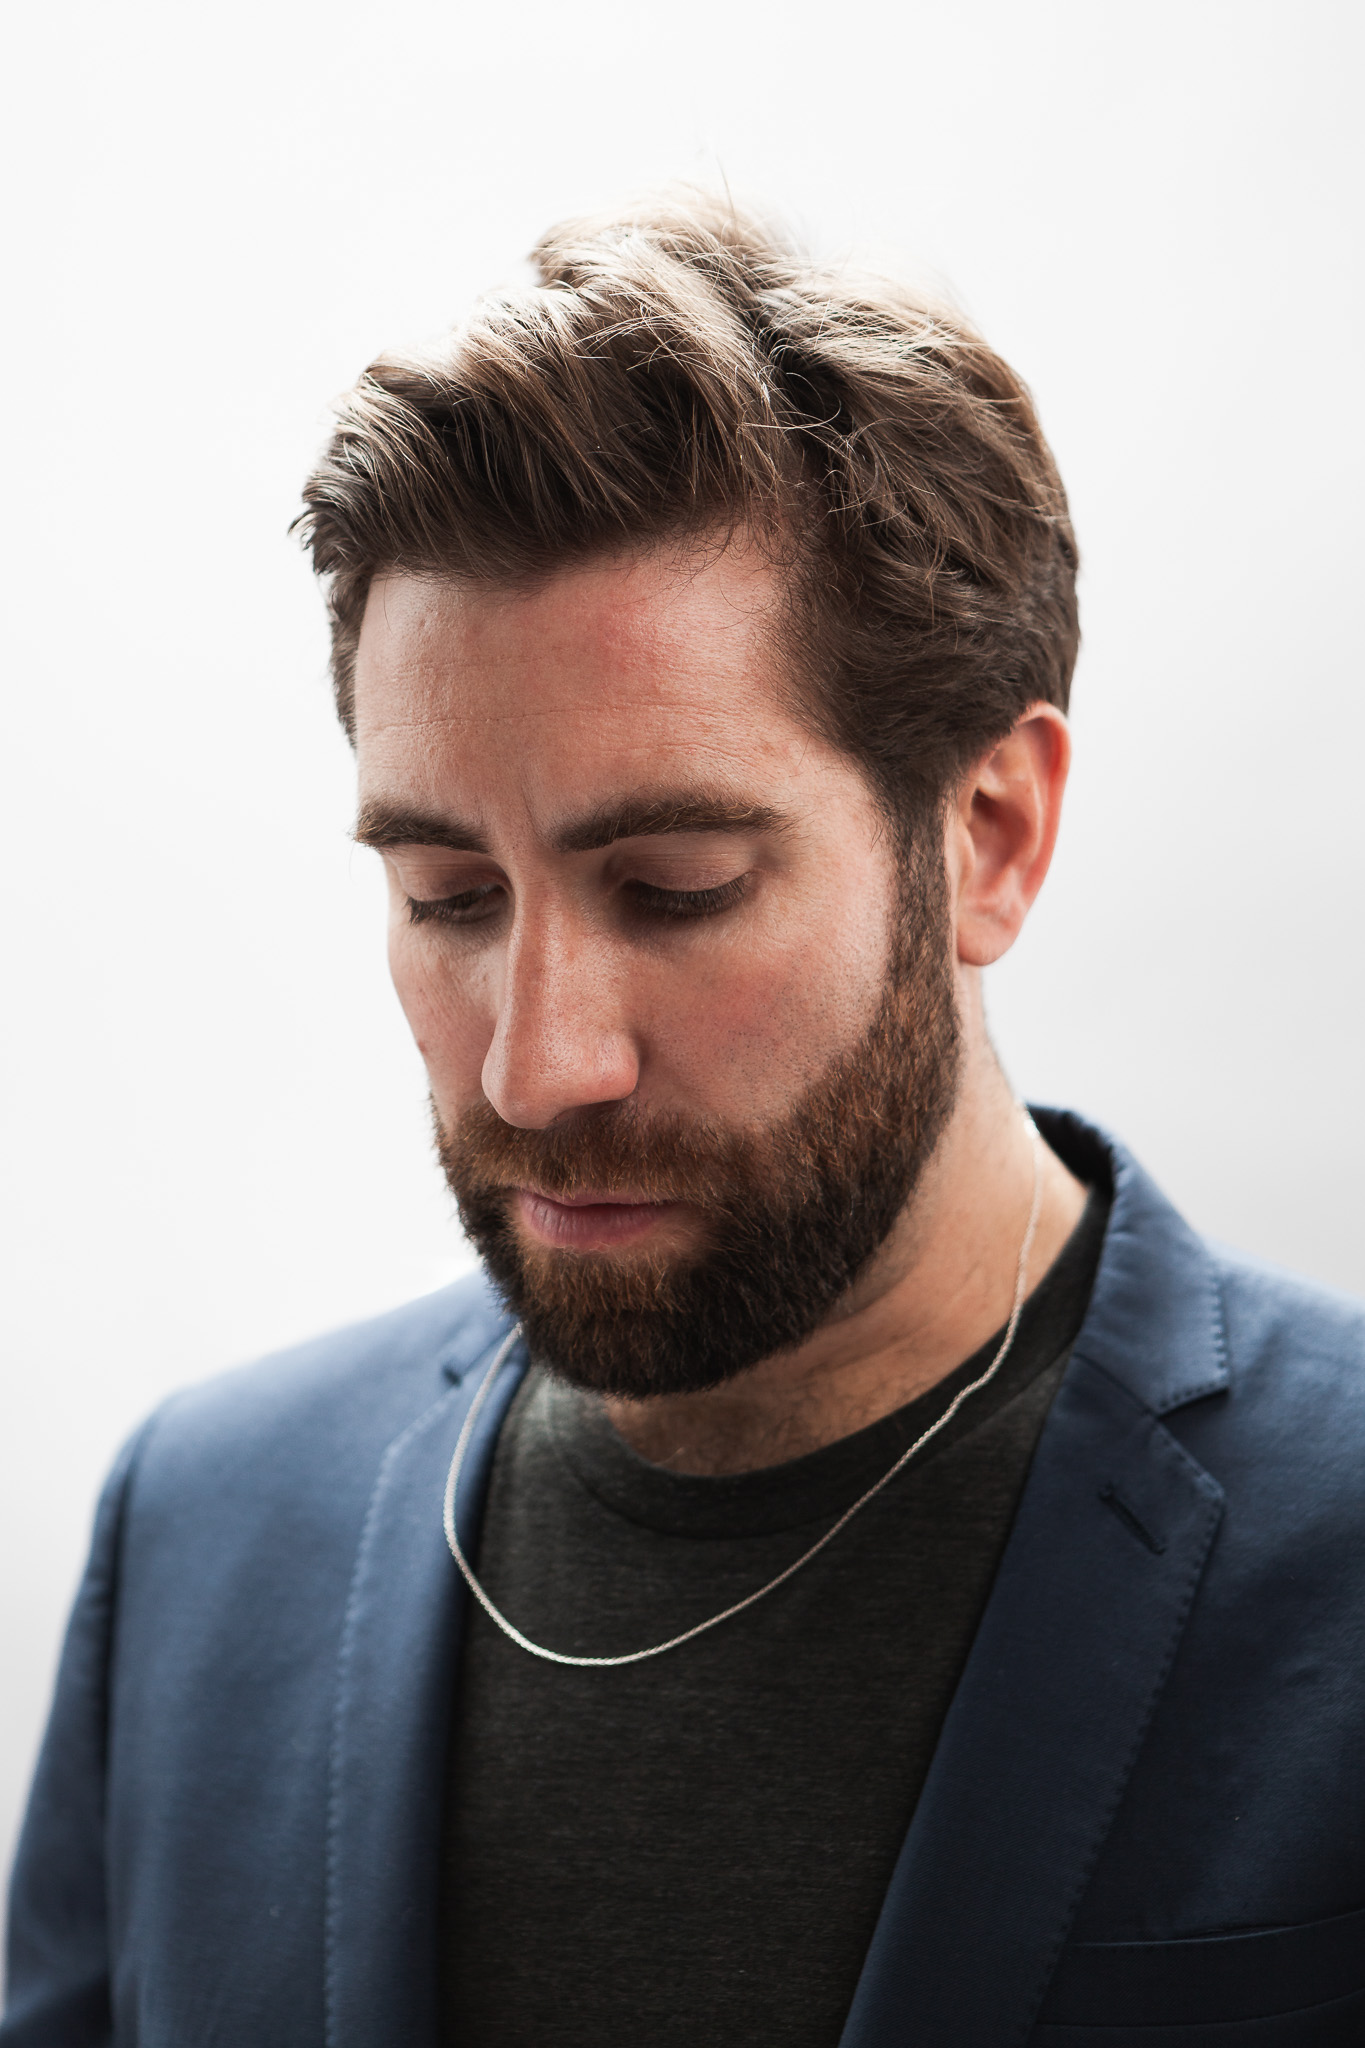 Jake gyllenhaal doesn't manscape, nocturnal animals picture director reveals